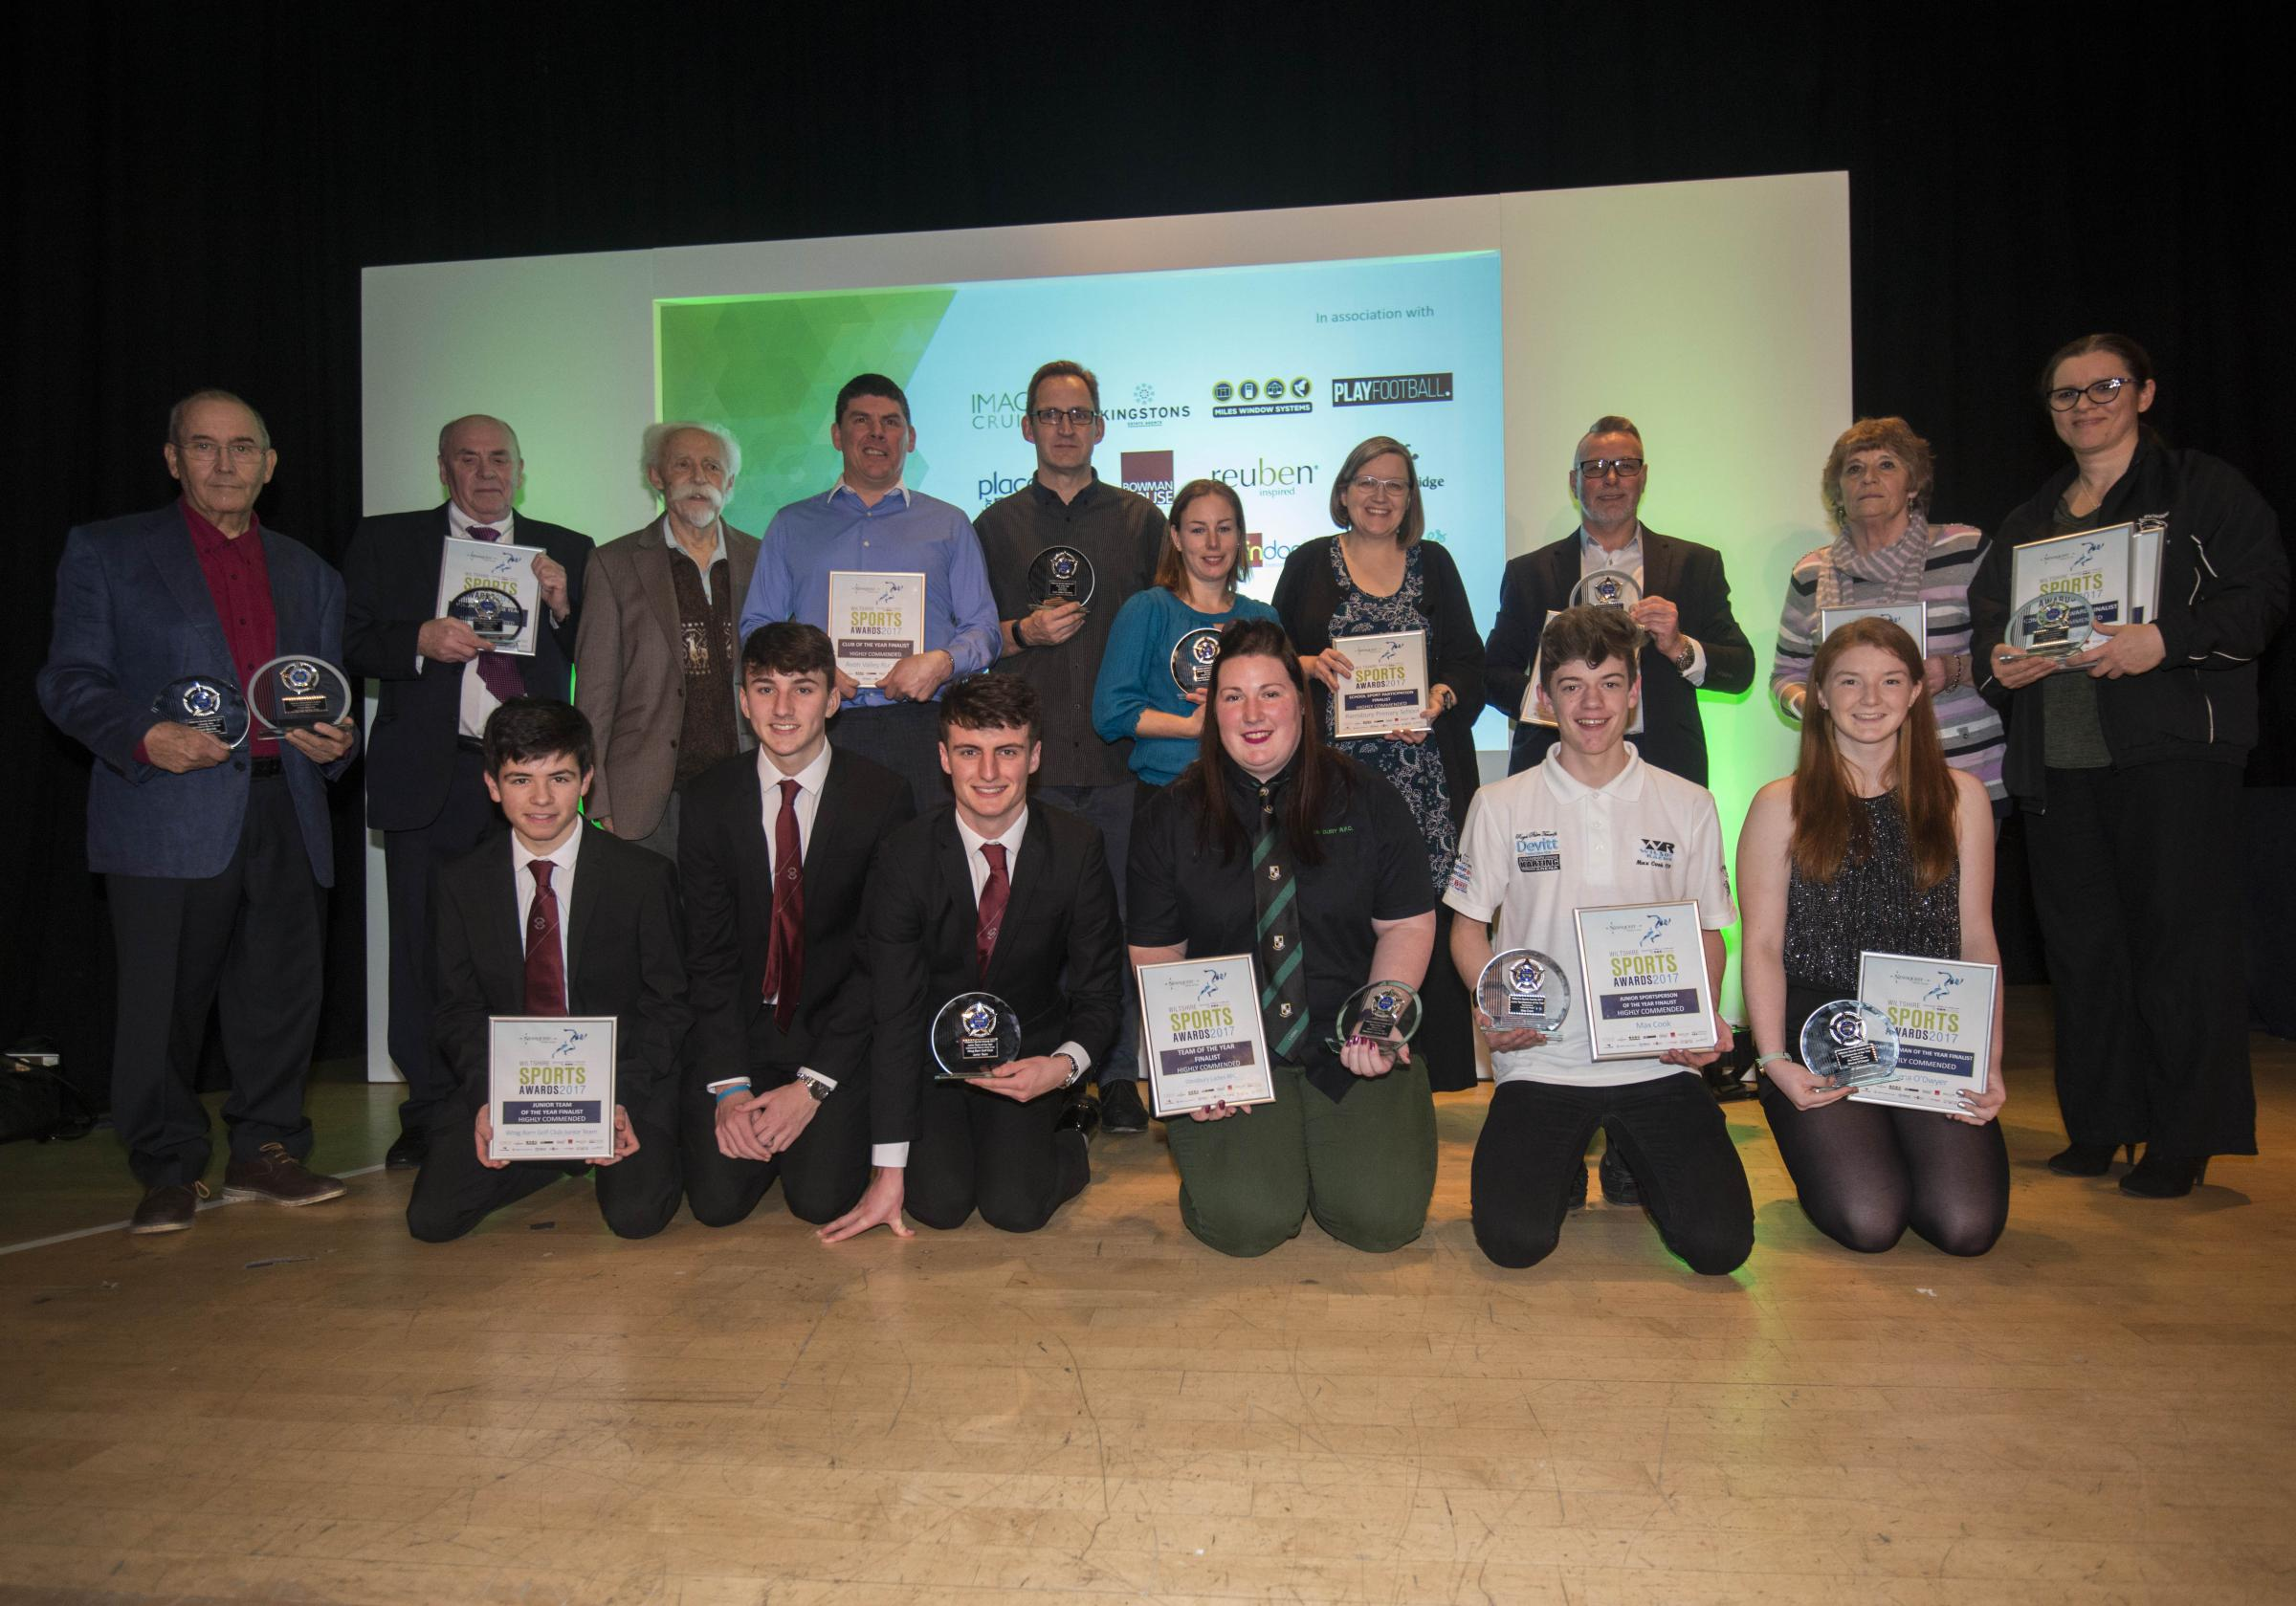 Wiltshire Sports Awards winners at last night's ceremony at Devizes' Corn Exchange Picture: Clare Green (www.claregreenphotography.com)